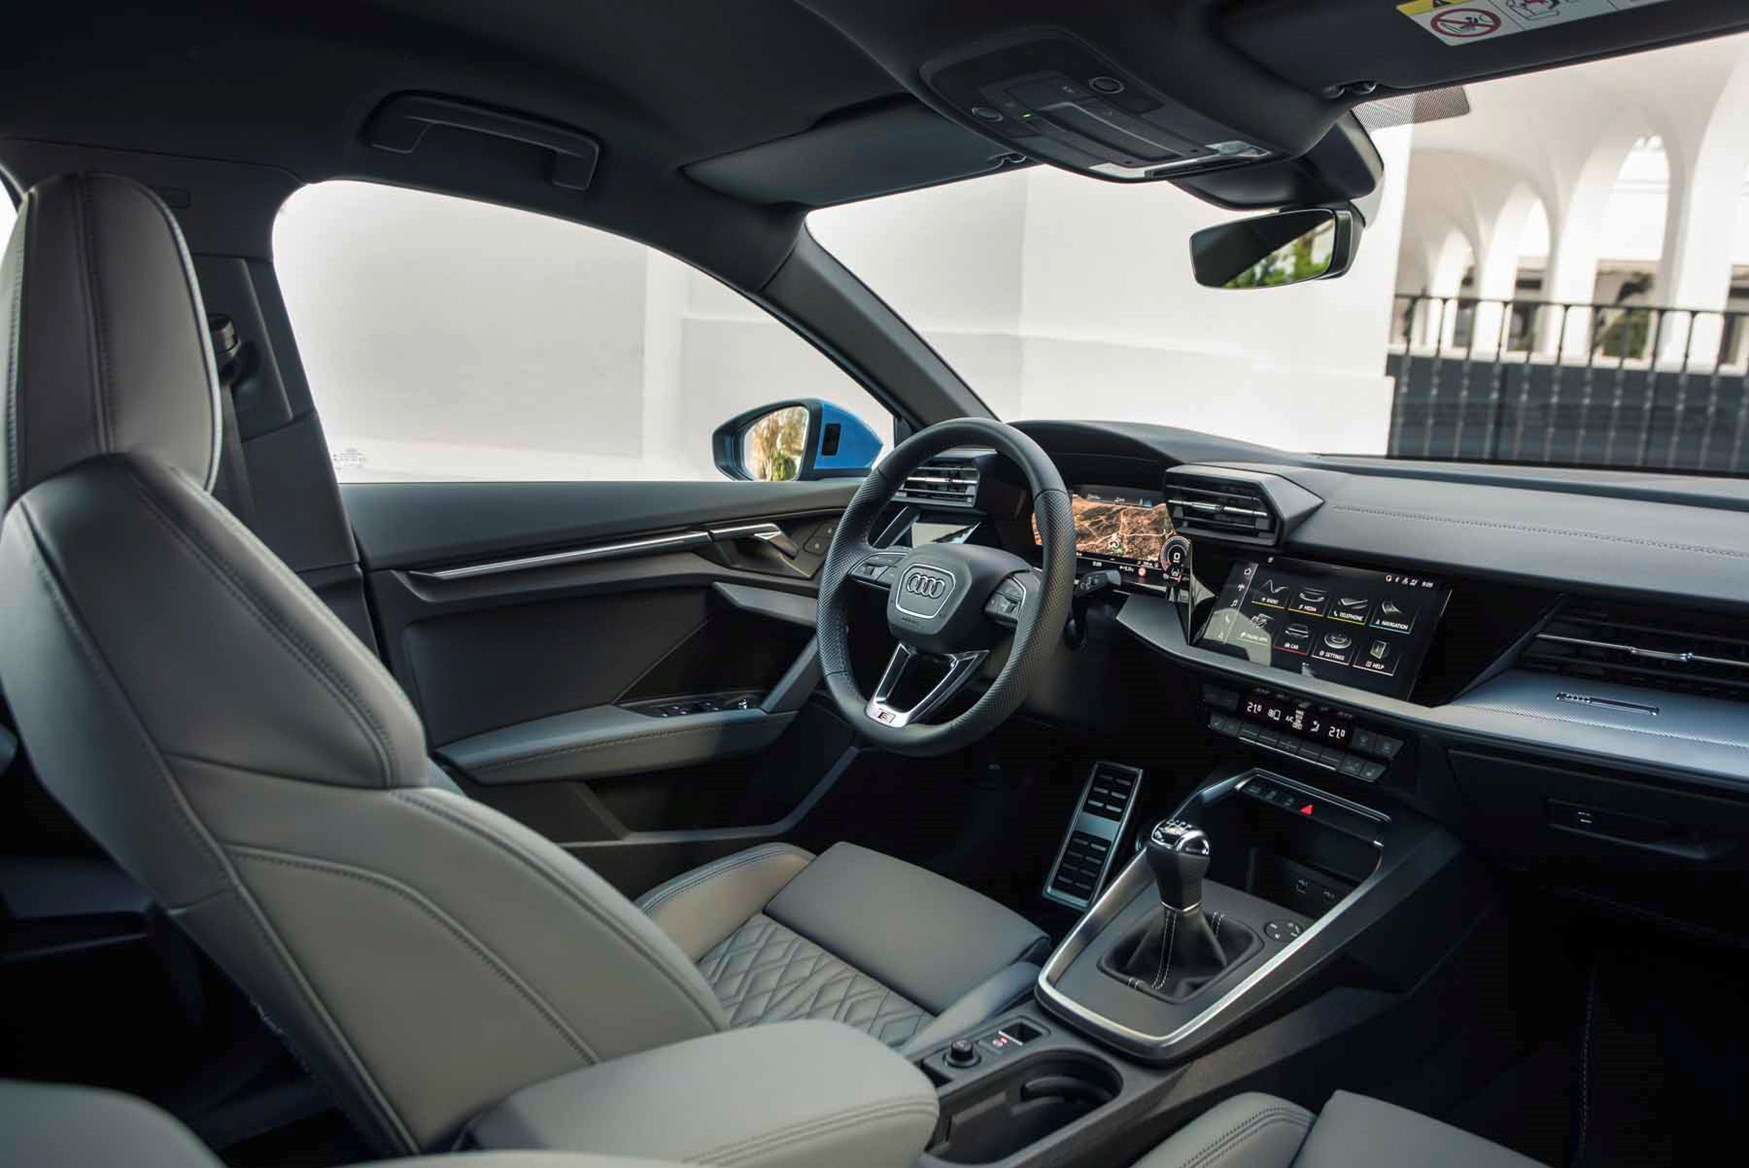 Audi A3 2020 Interior Layout Dashboard Infotainment Parkers